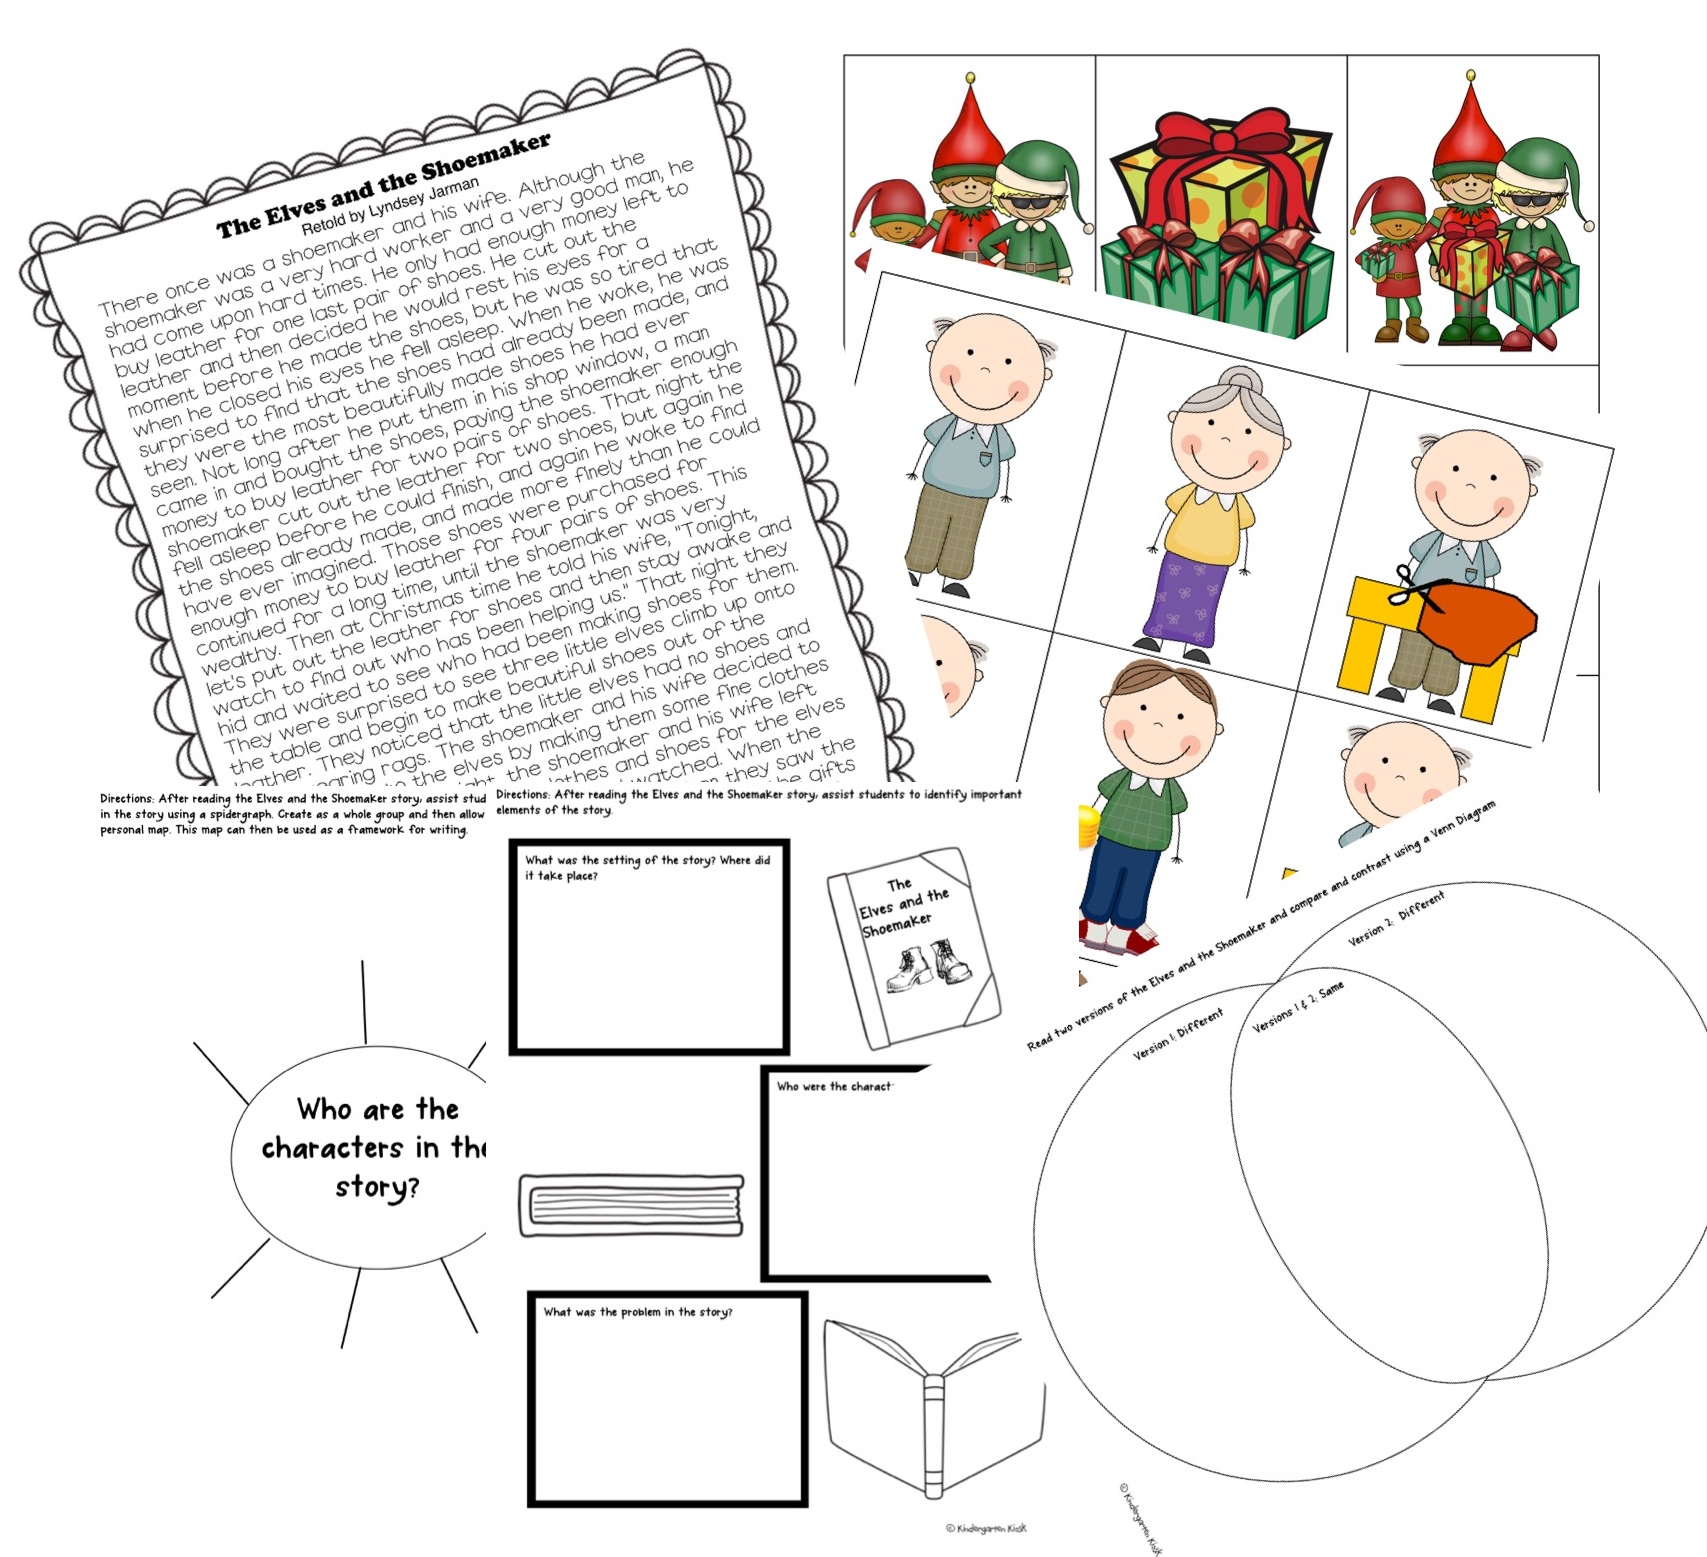 The Elves and The Shoemaker Storytelling Activity.